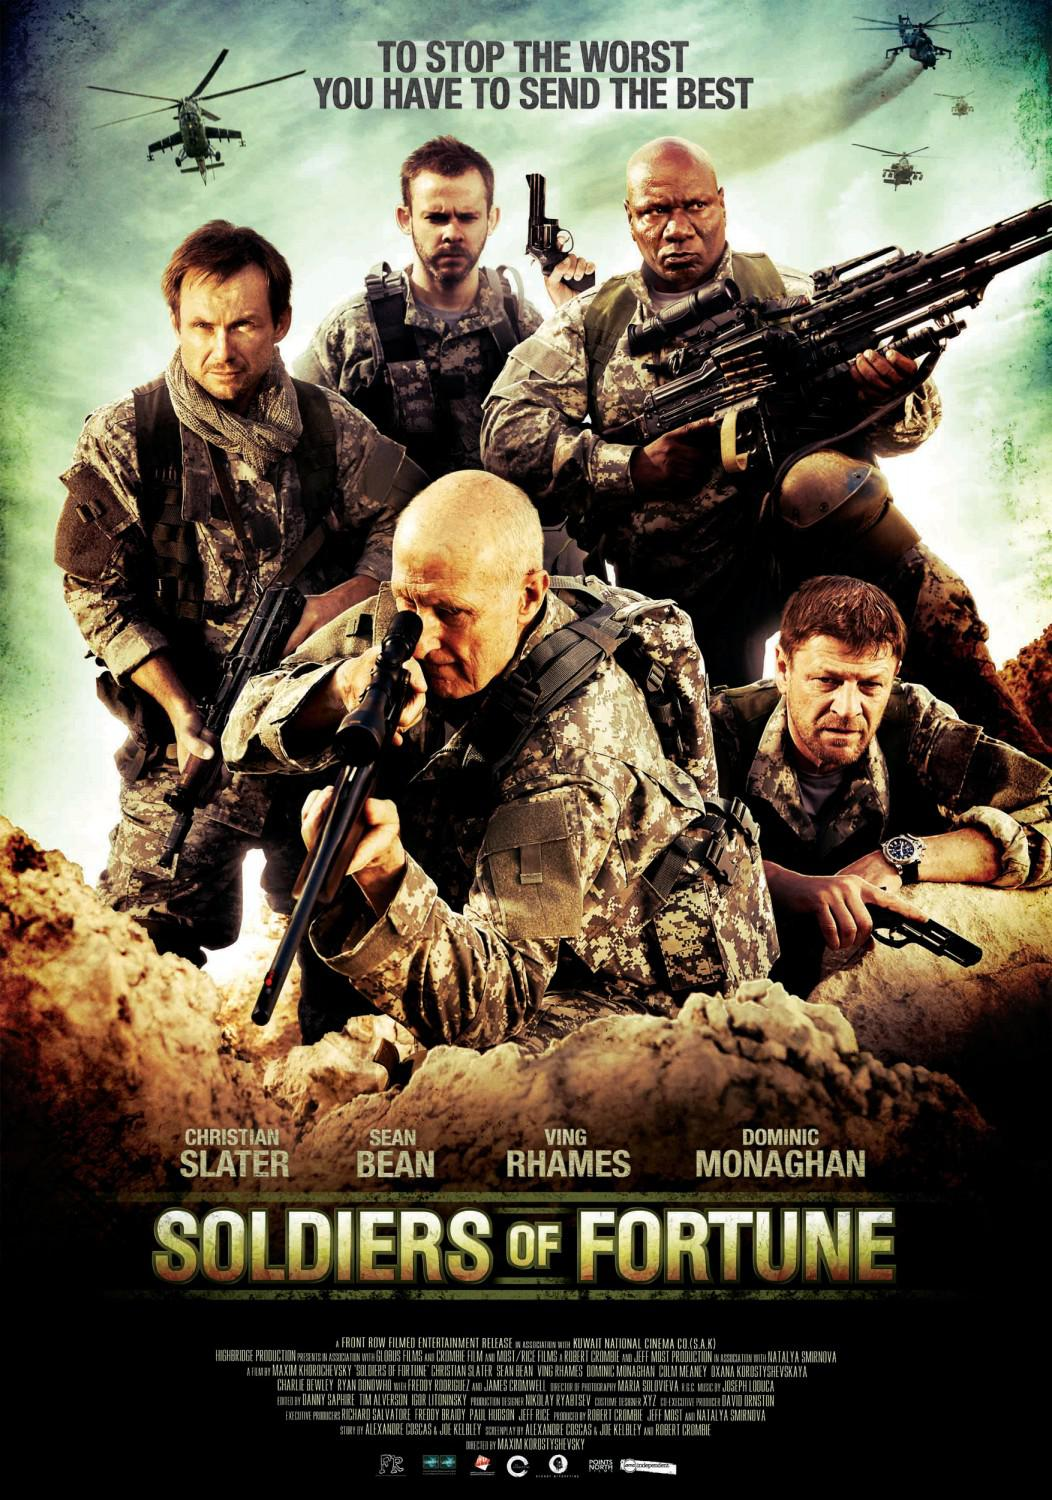 Soldiers of Fortune ... to stop the worst you have to send the best - Christian Slater - Sean Bean - Ving Rhames - Dominic Monaghan